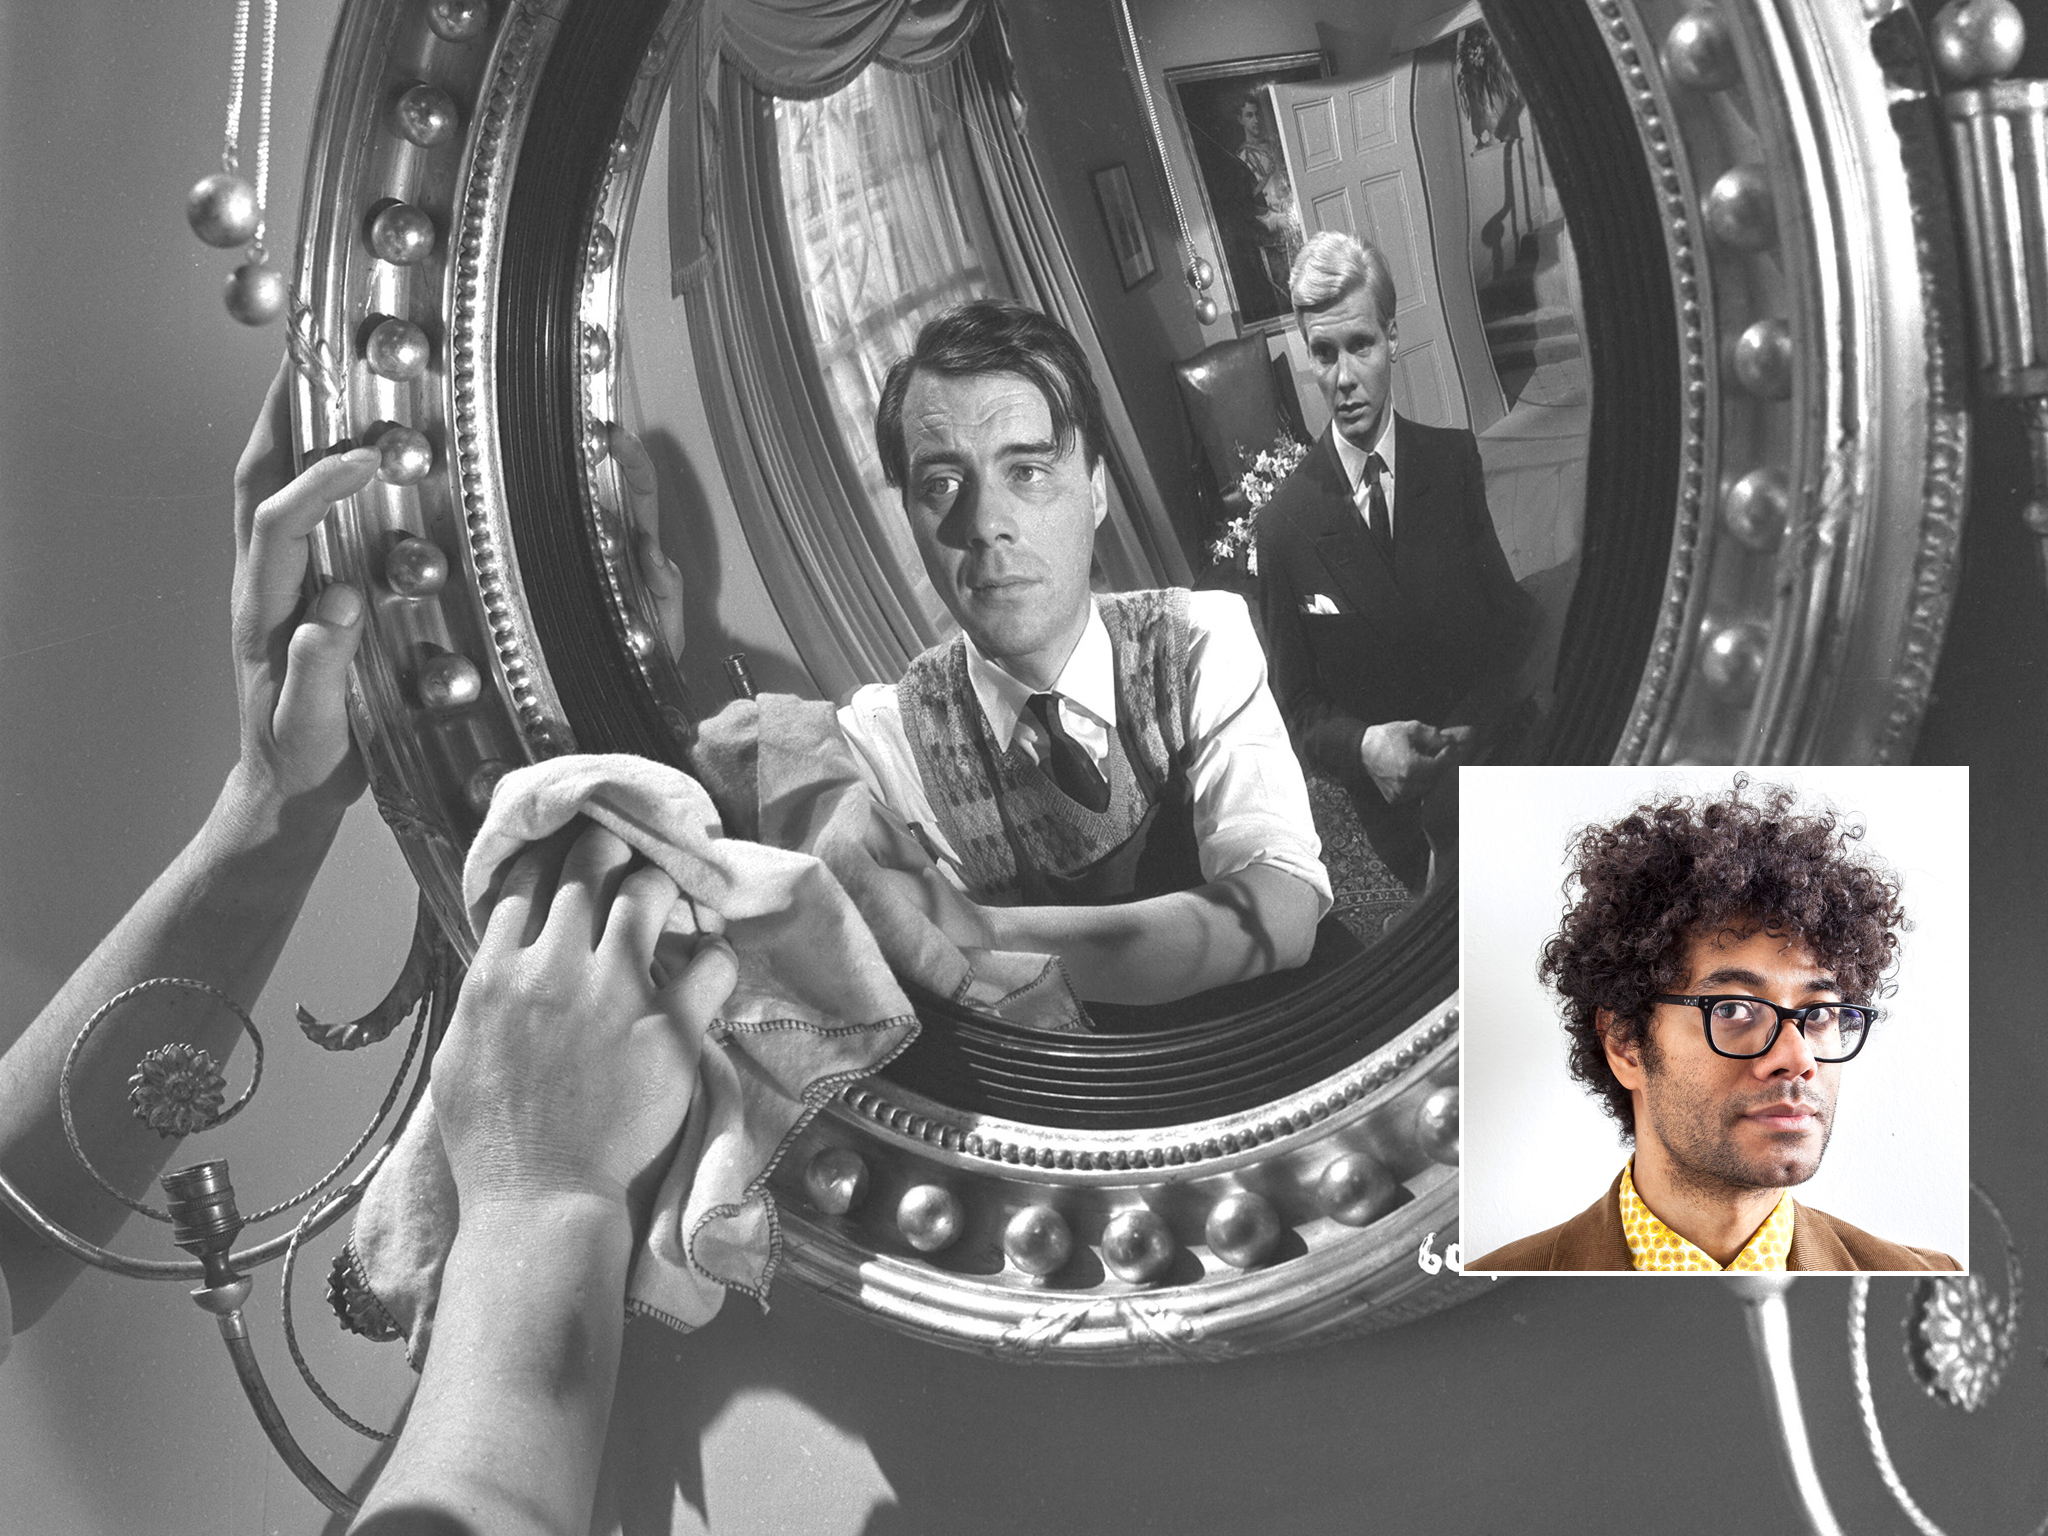 Richard Ayoade on The Servant (1963)